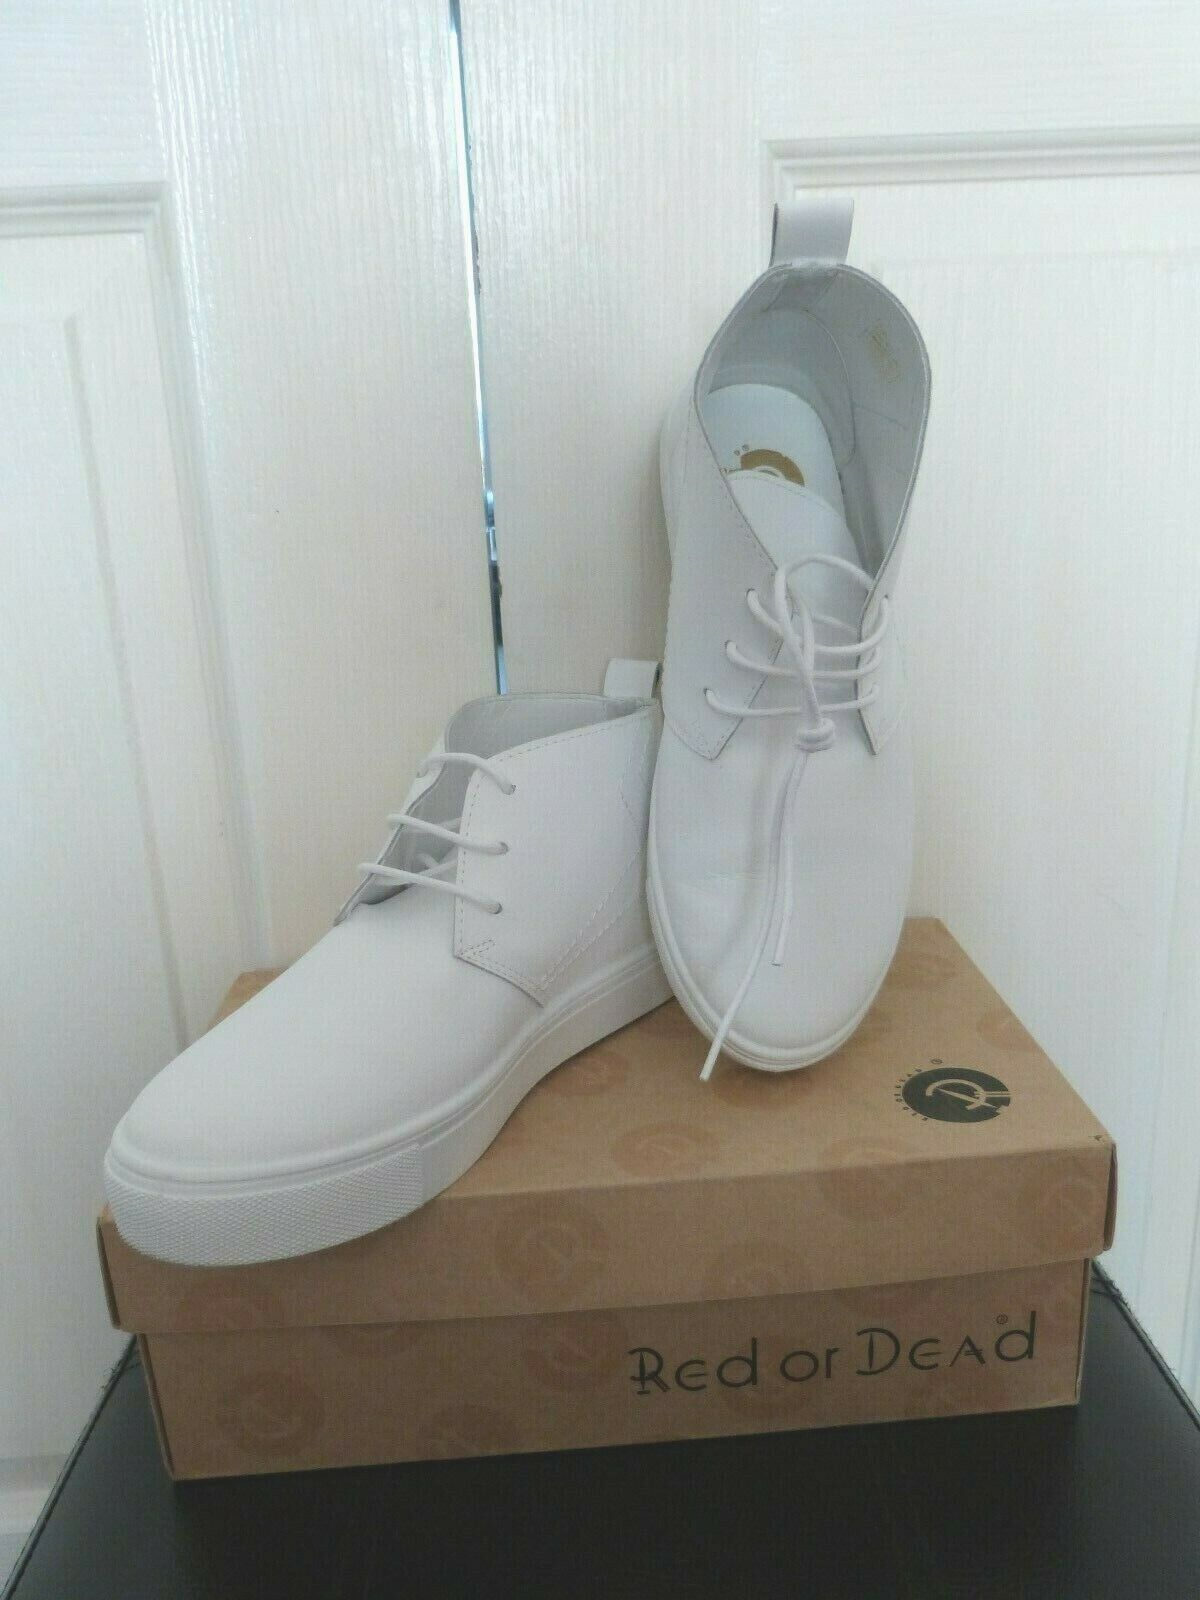 Ladies White Leather RED OR DEAD Hi Top Trainer Size 5 (38)